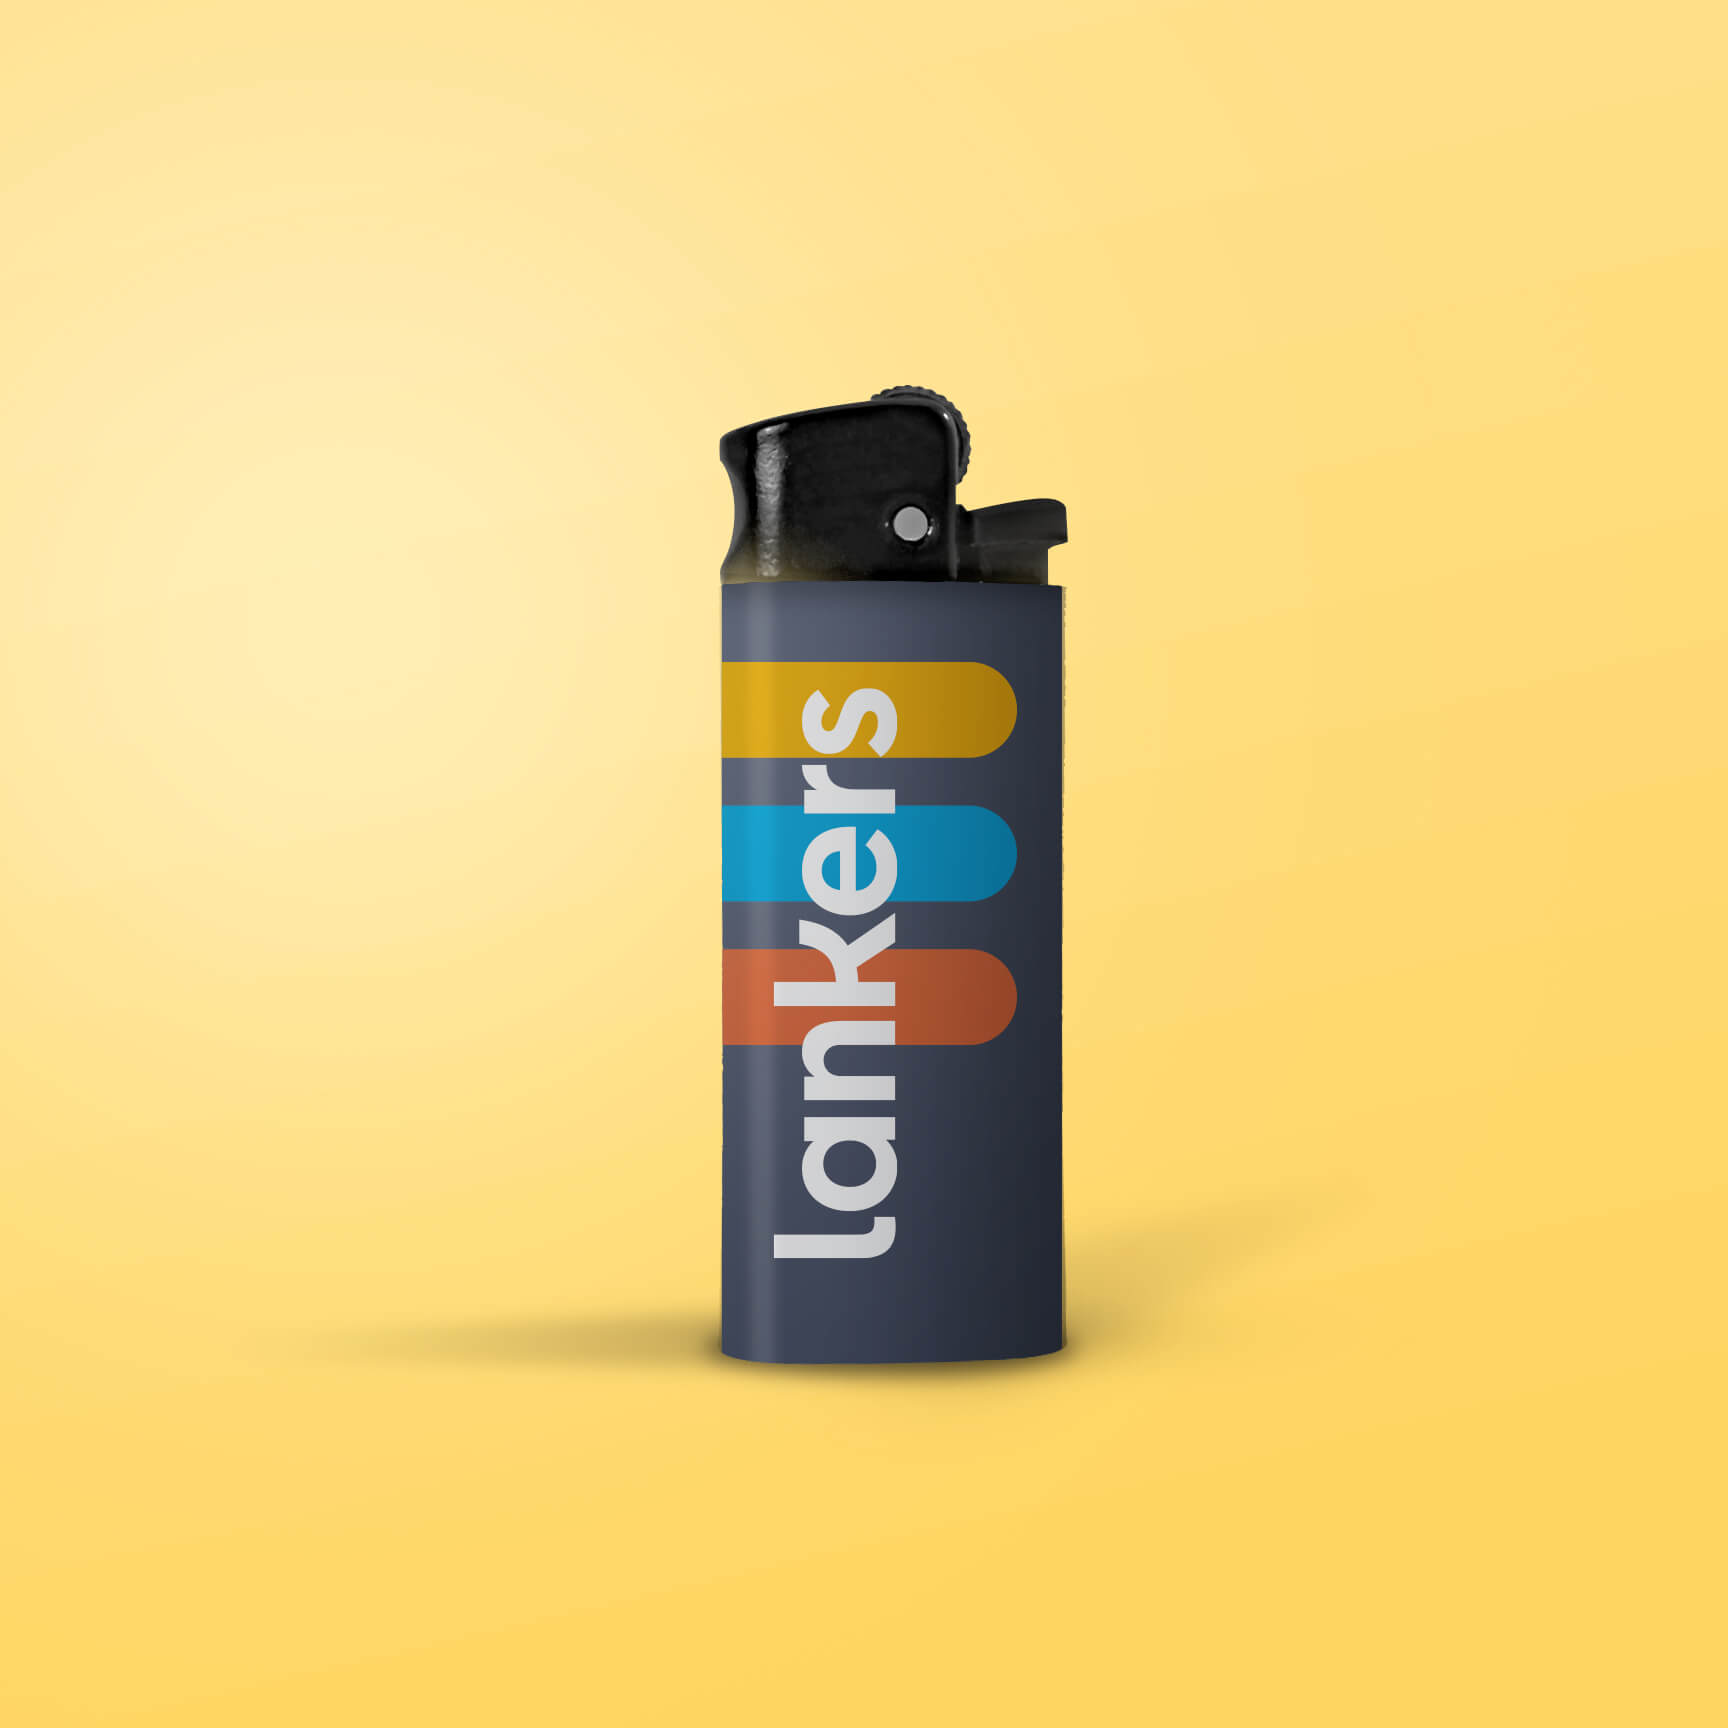 Lighter design